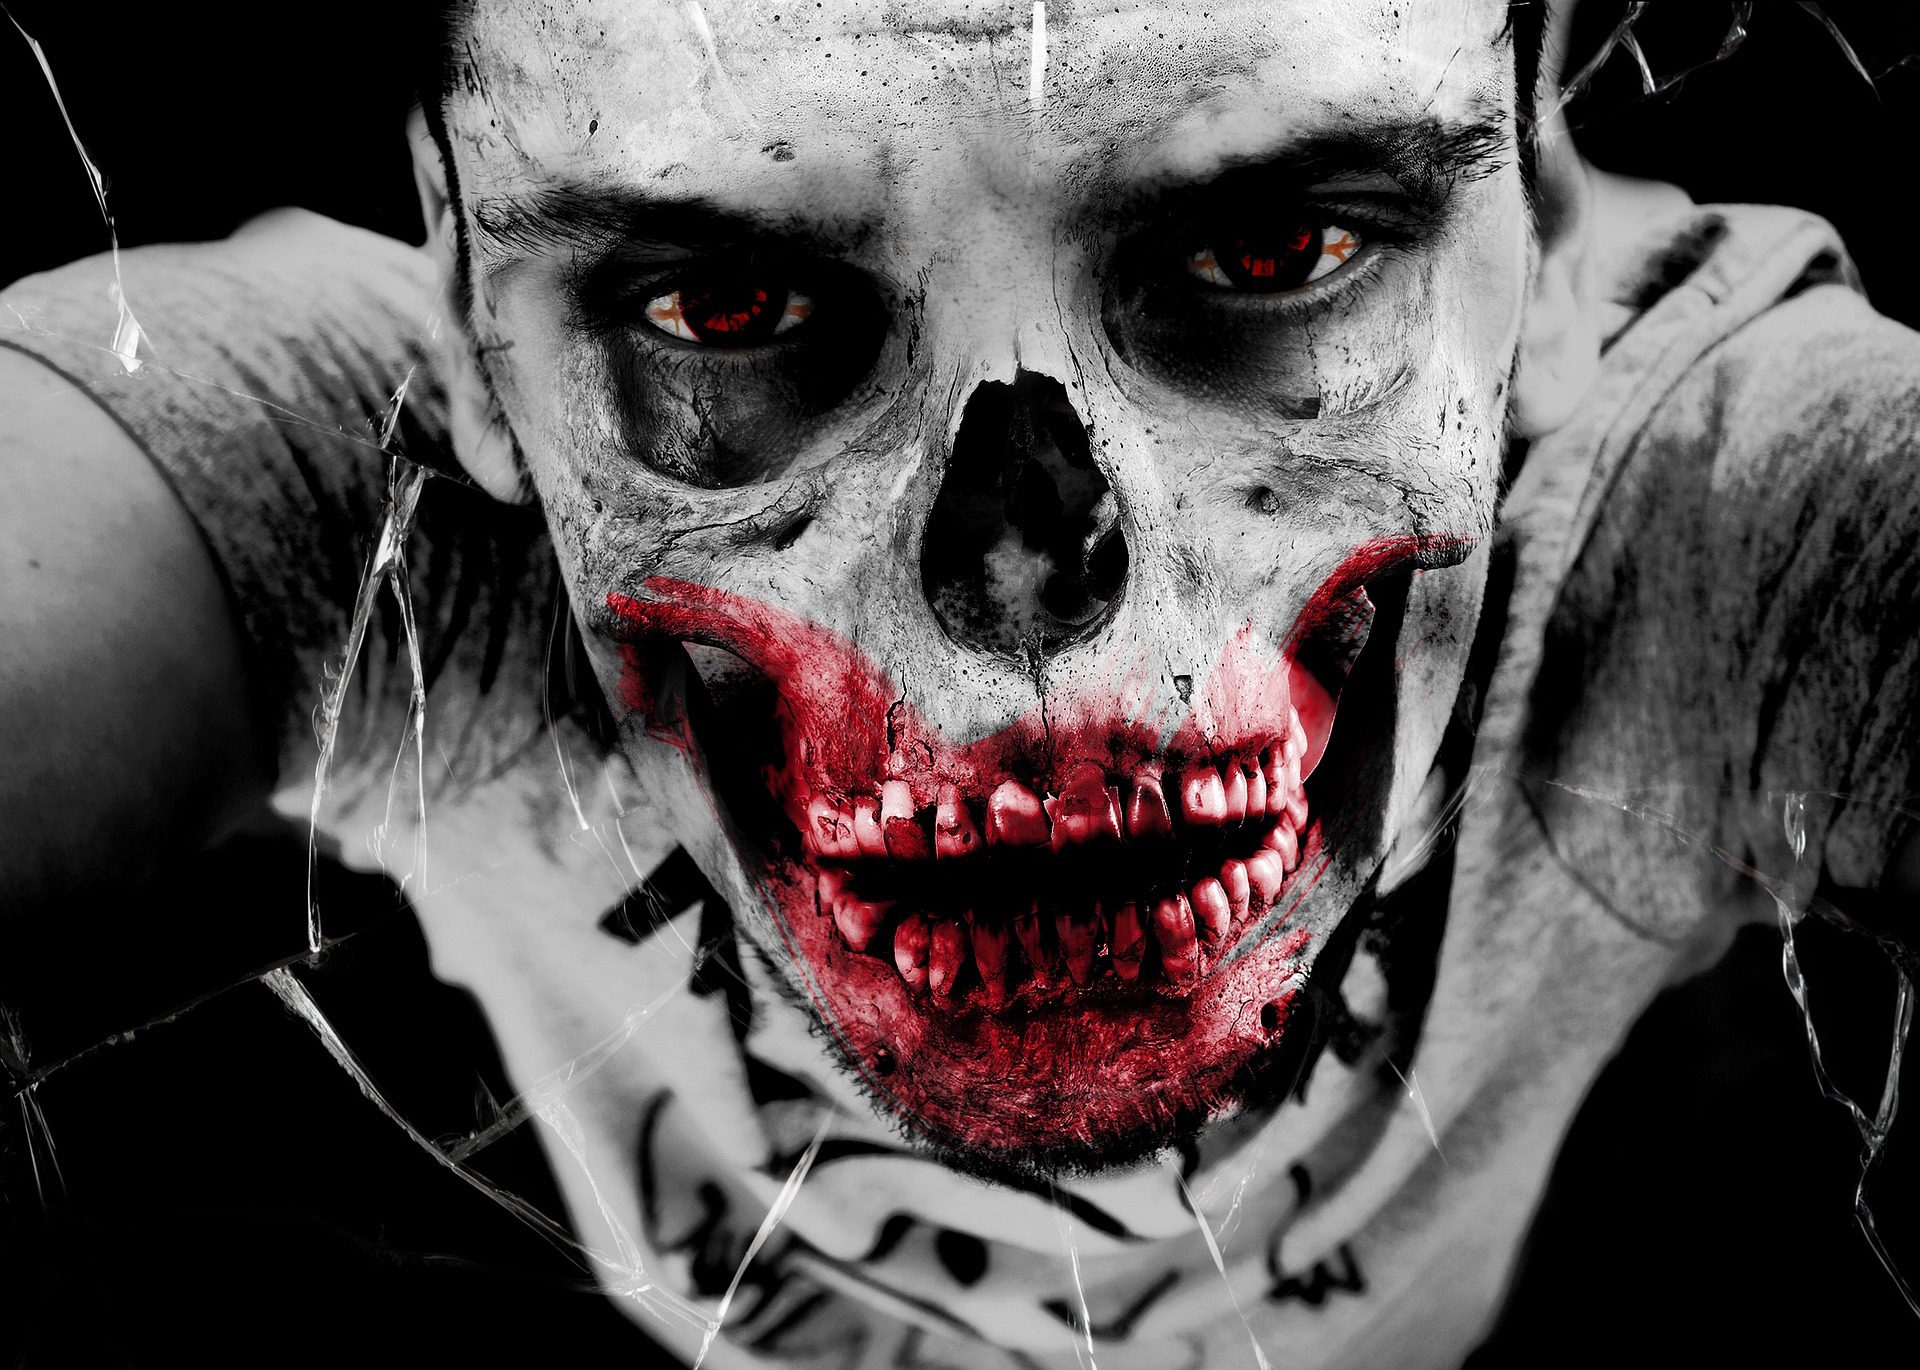 Monster, Zombie, Toten, Blut, Horror, finstere, Halloween - Wallpaper HD - Prof.-falken.com